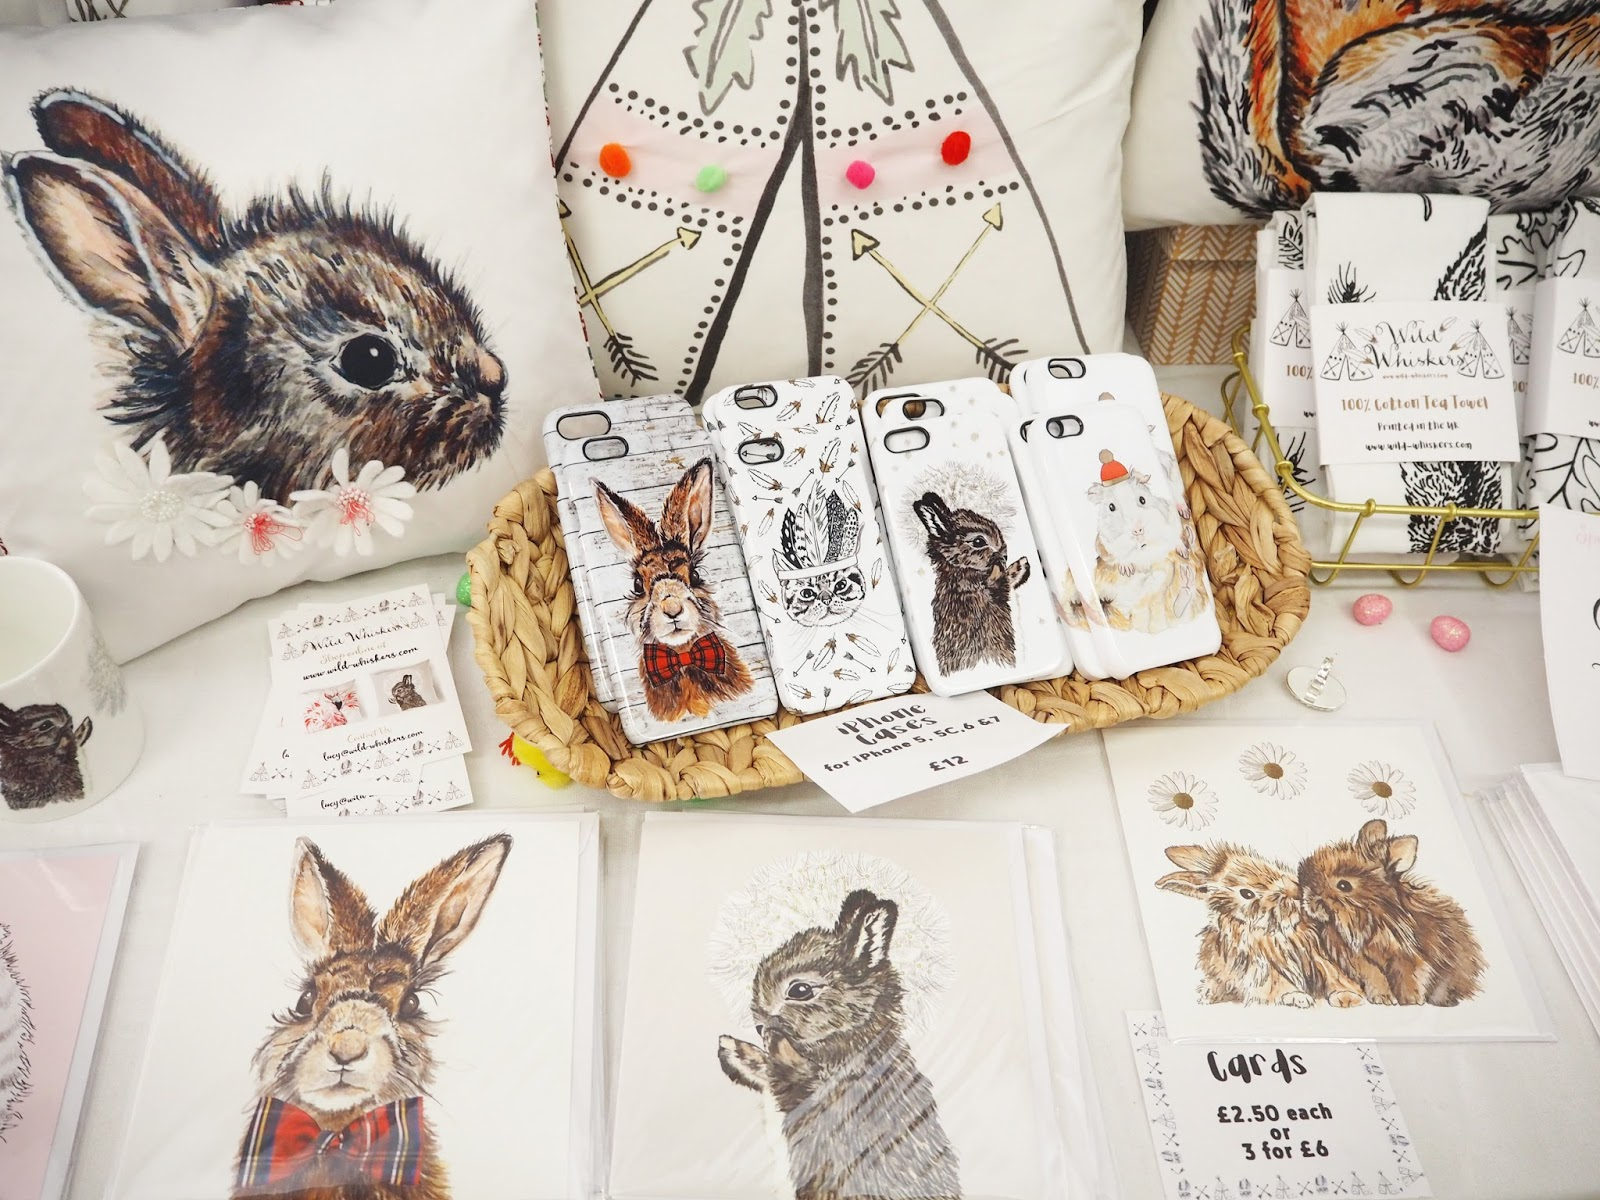 Wild Whiskers Handmade Accessories, Katie Kirk Loves, UK Blogger, Brighton Blogger, West Sussex Blogger, Support Handmade, Handmade in the UK, Handmade Gifts, Hand Illustrated, Etsy Sellers, Handcrafted, Handmade Is Better, Craft Blogger, Small Business, Shop Small